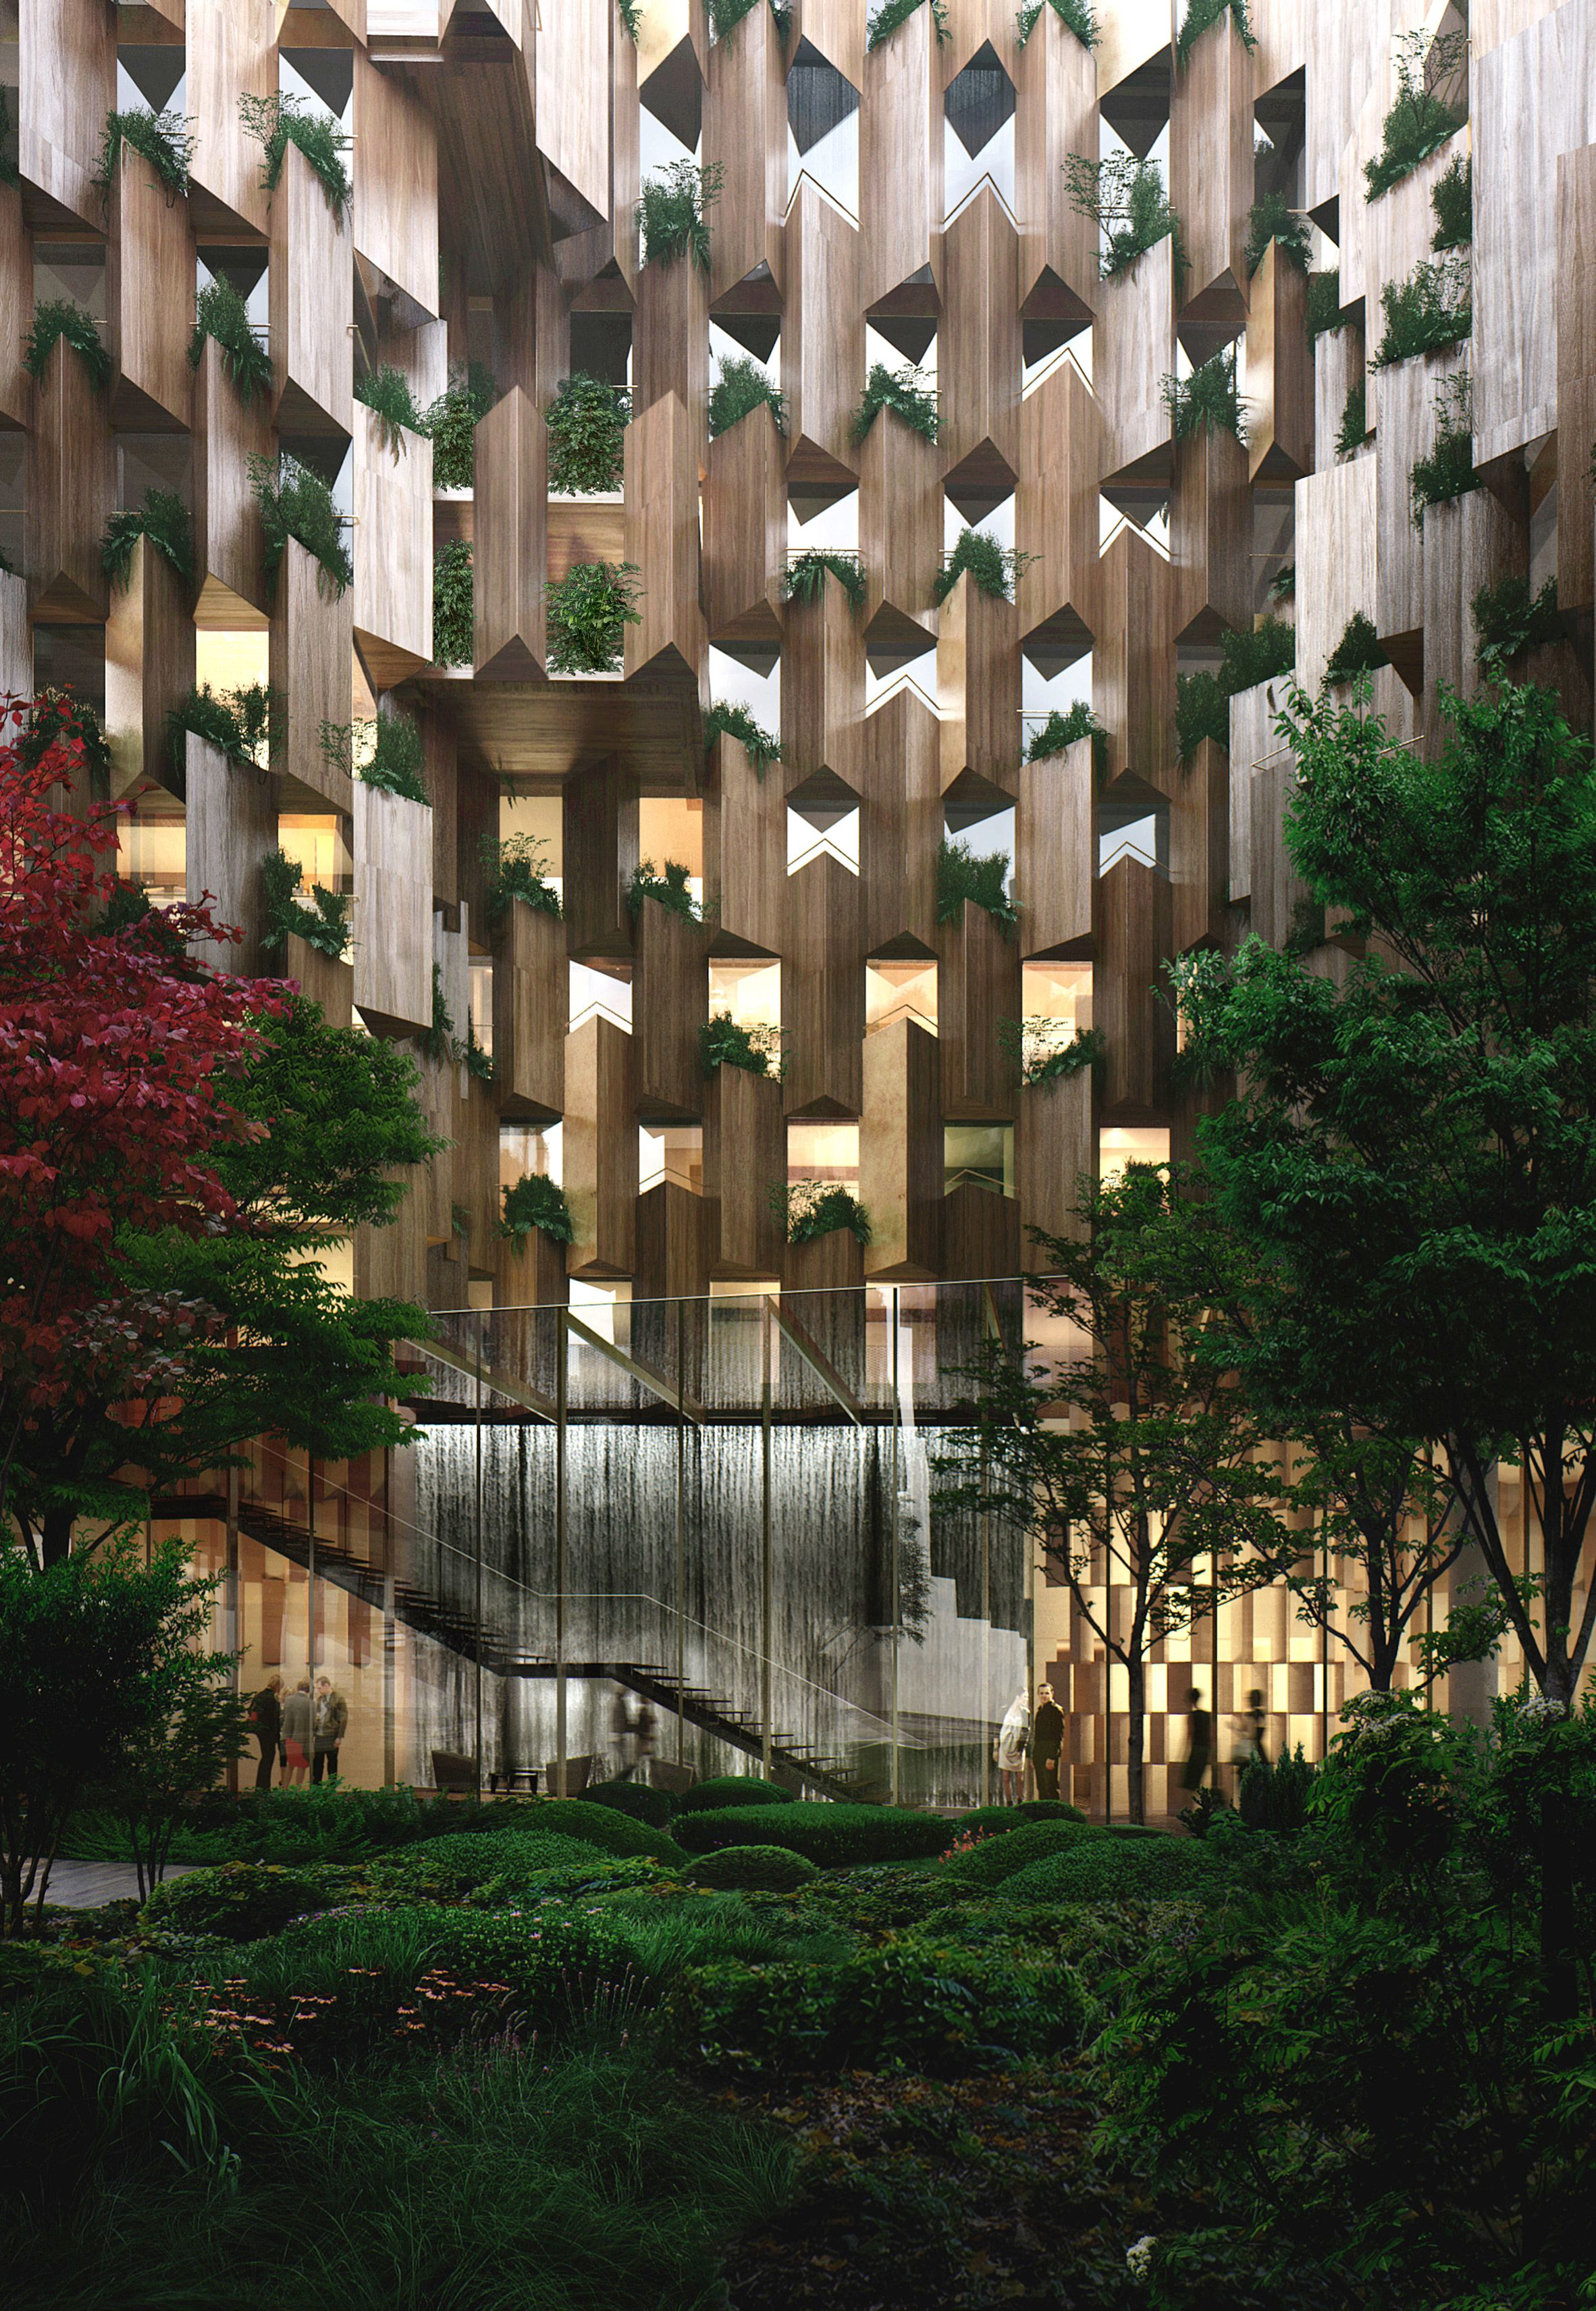 Kengo kuma reveals plant covered eco luxury hotel for paris